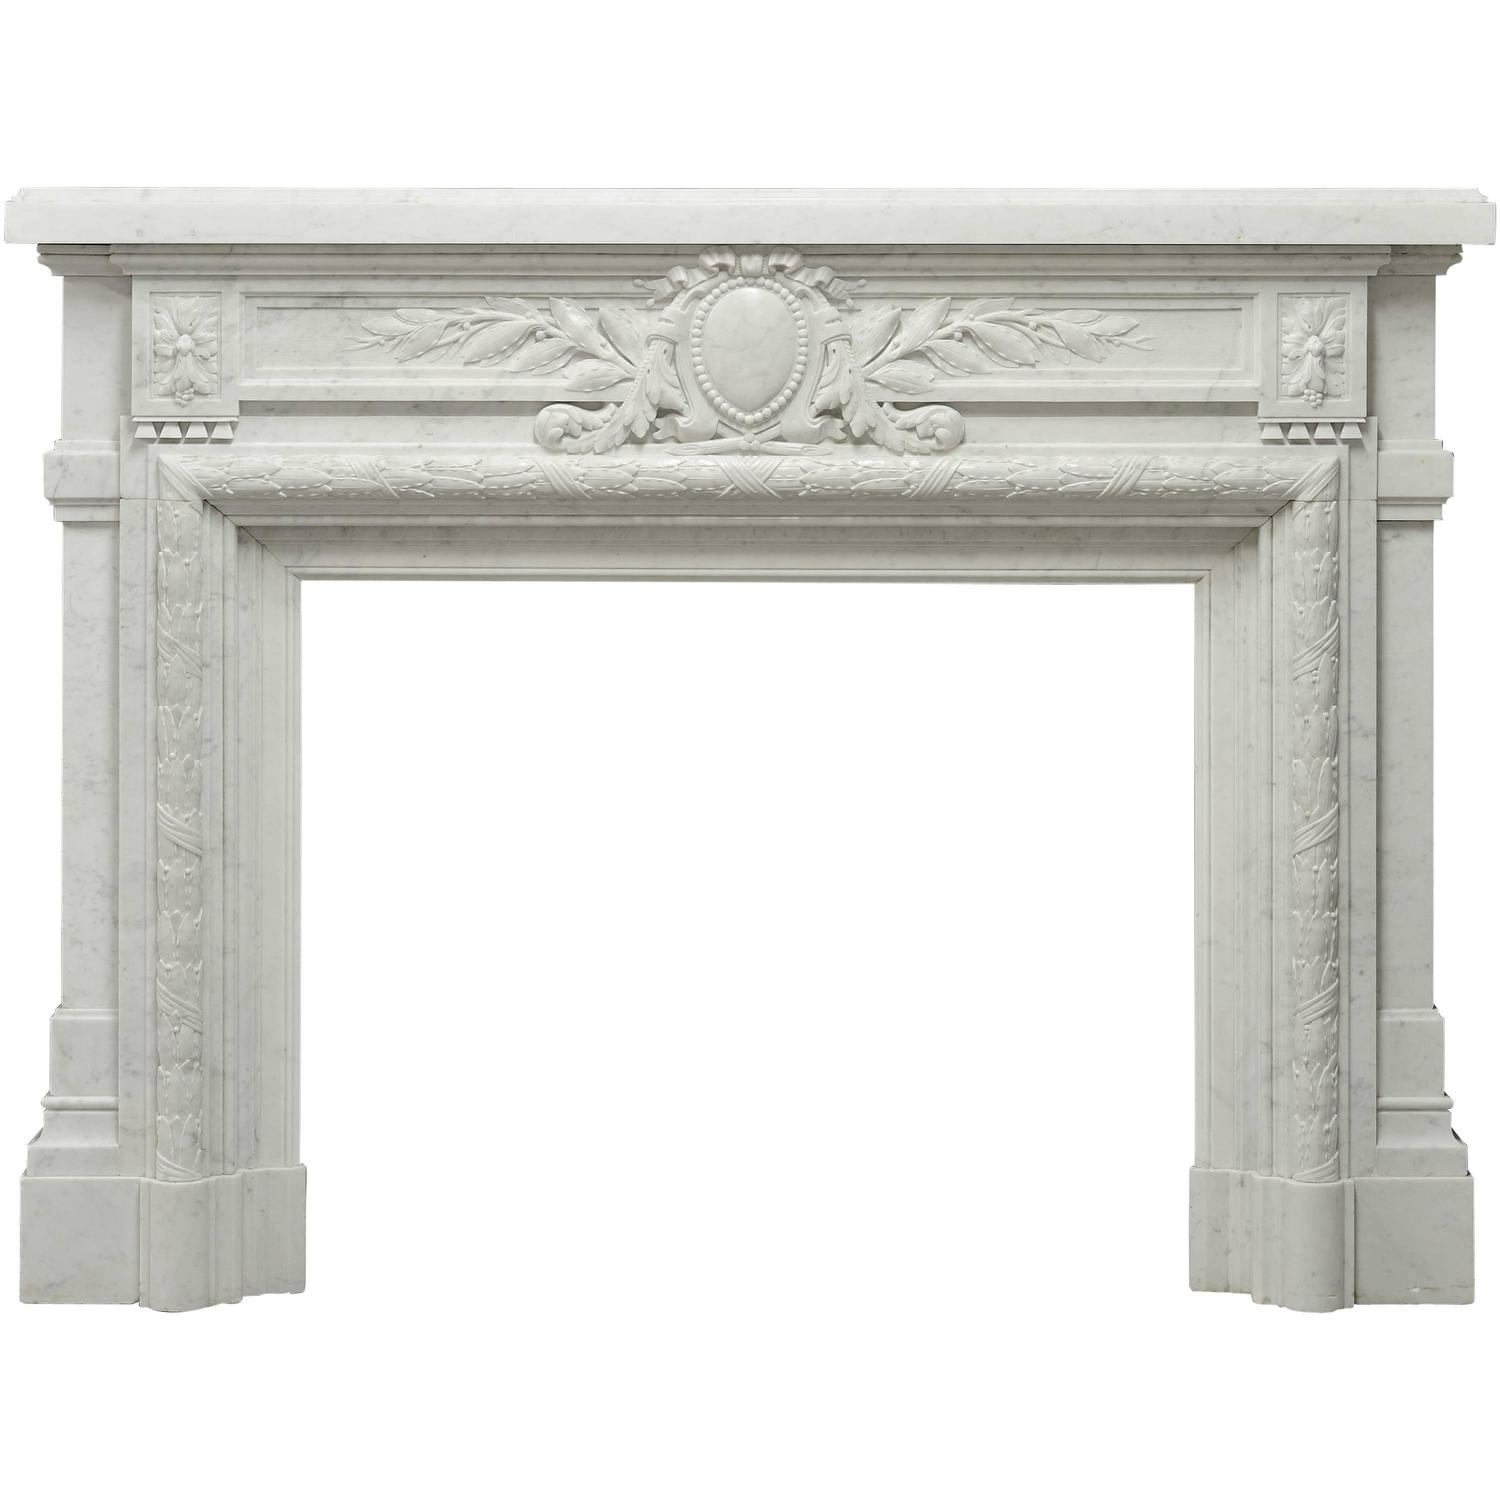 Antique fireplace mantels for sale - Antique French Louis Xvi Fireplace Mantel In Carrara White Marble